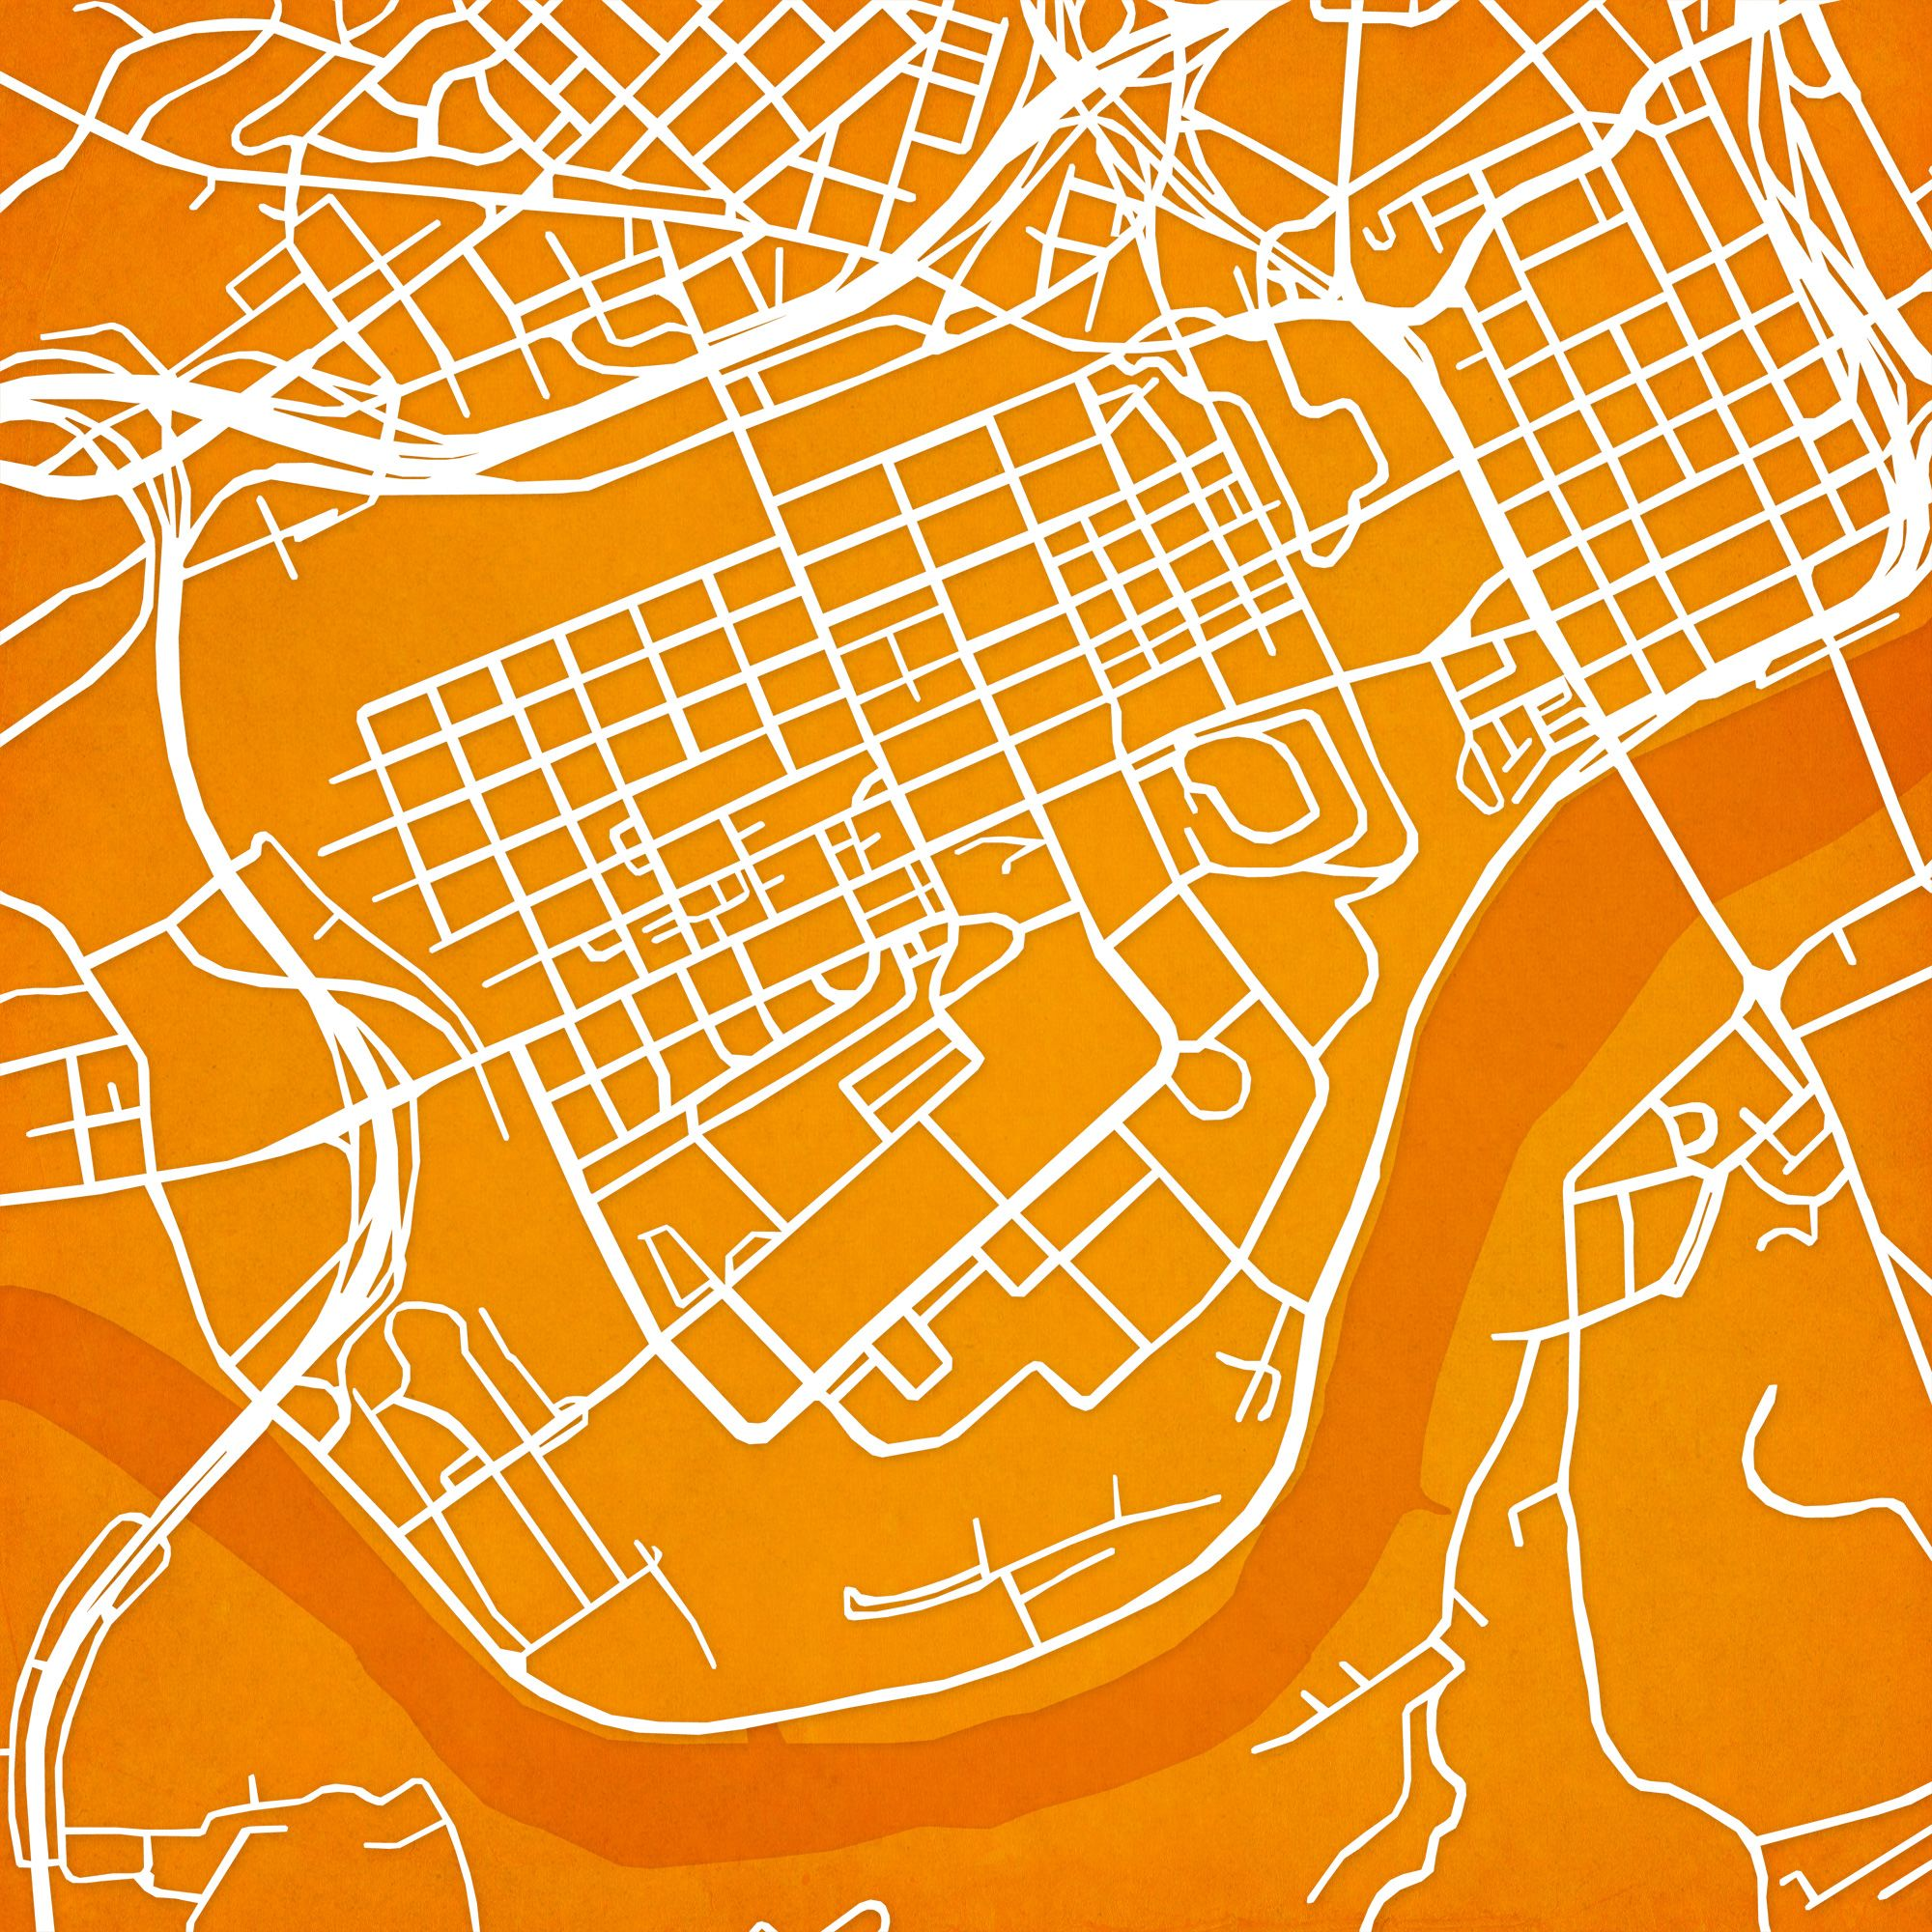 University Of Tennessee Knoxville Campus Map.University Of Tennessee City Prints Map Art Artsy Pinterest